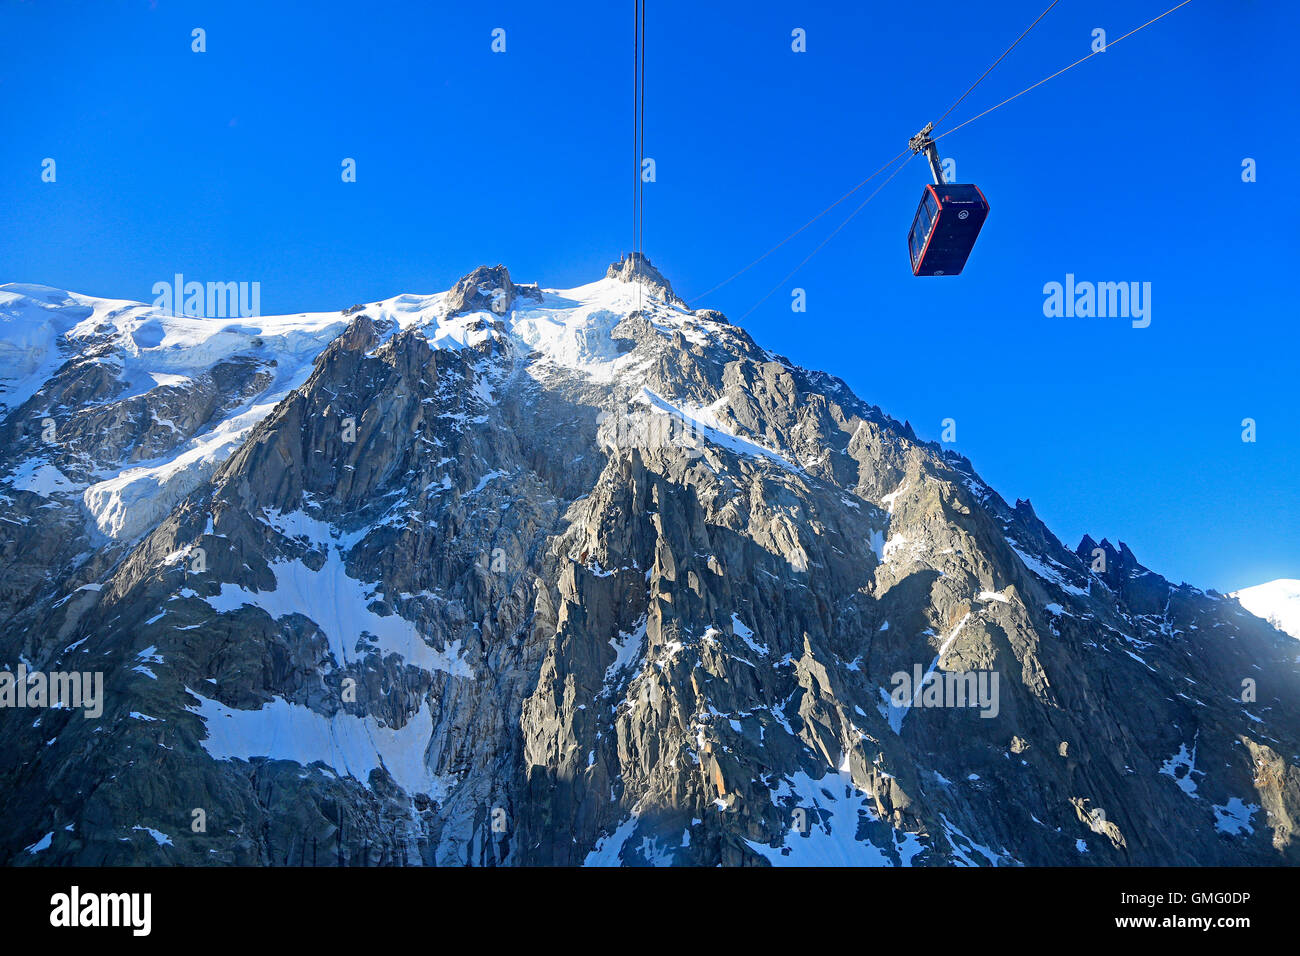 Aiguille du Midi and funicular in French Alps - Stock Image